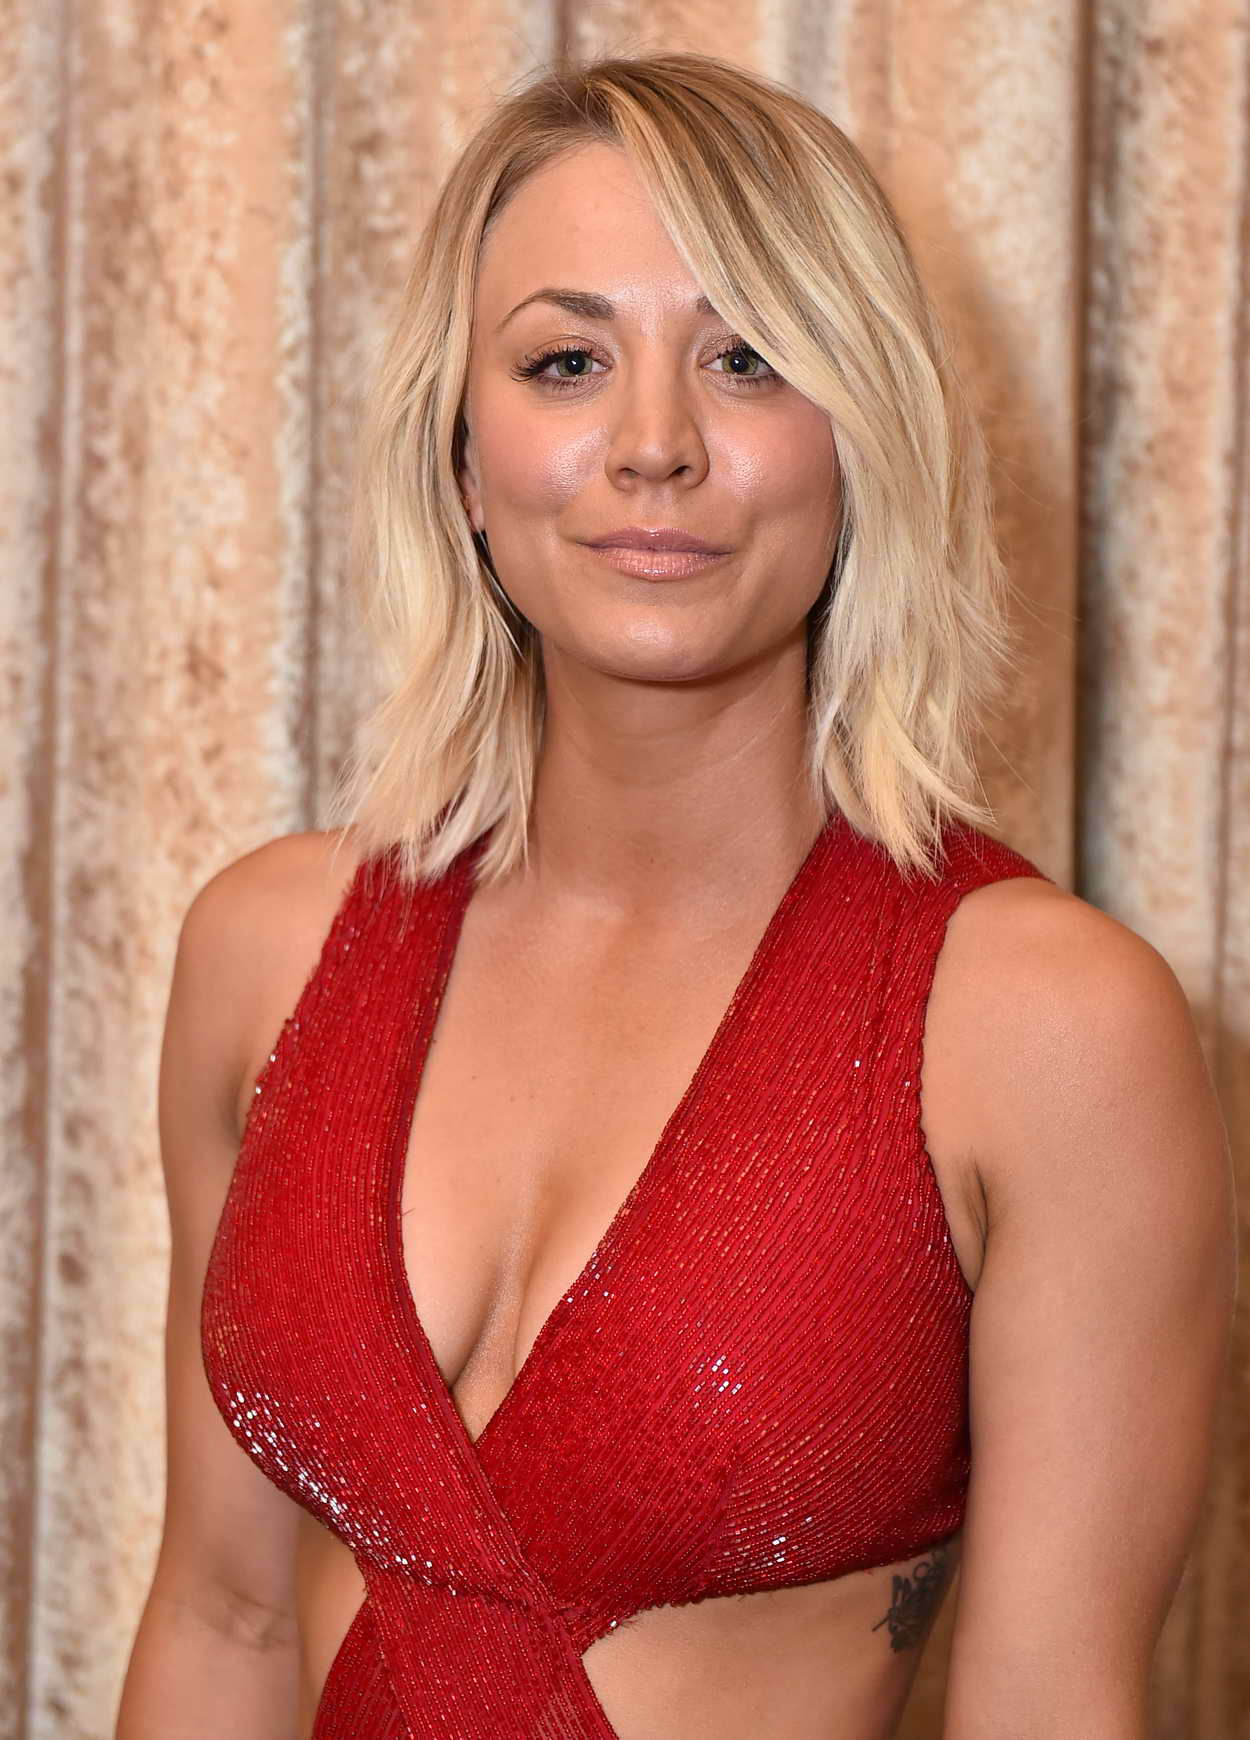 Kaley Cuoco naked (43 photos), video Paparazzi, iCloud, bra 2020